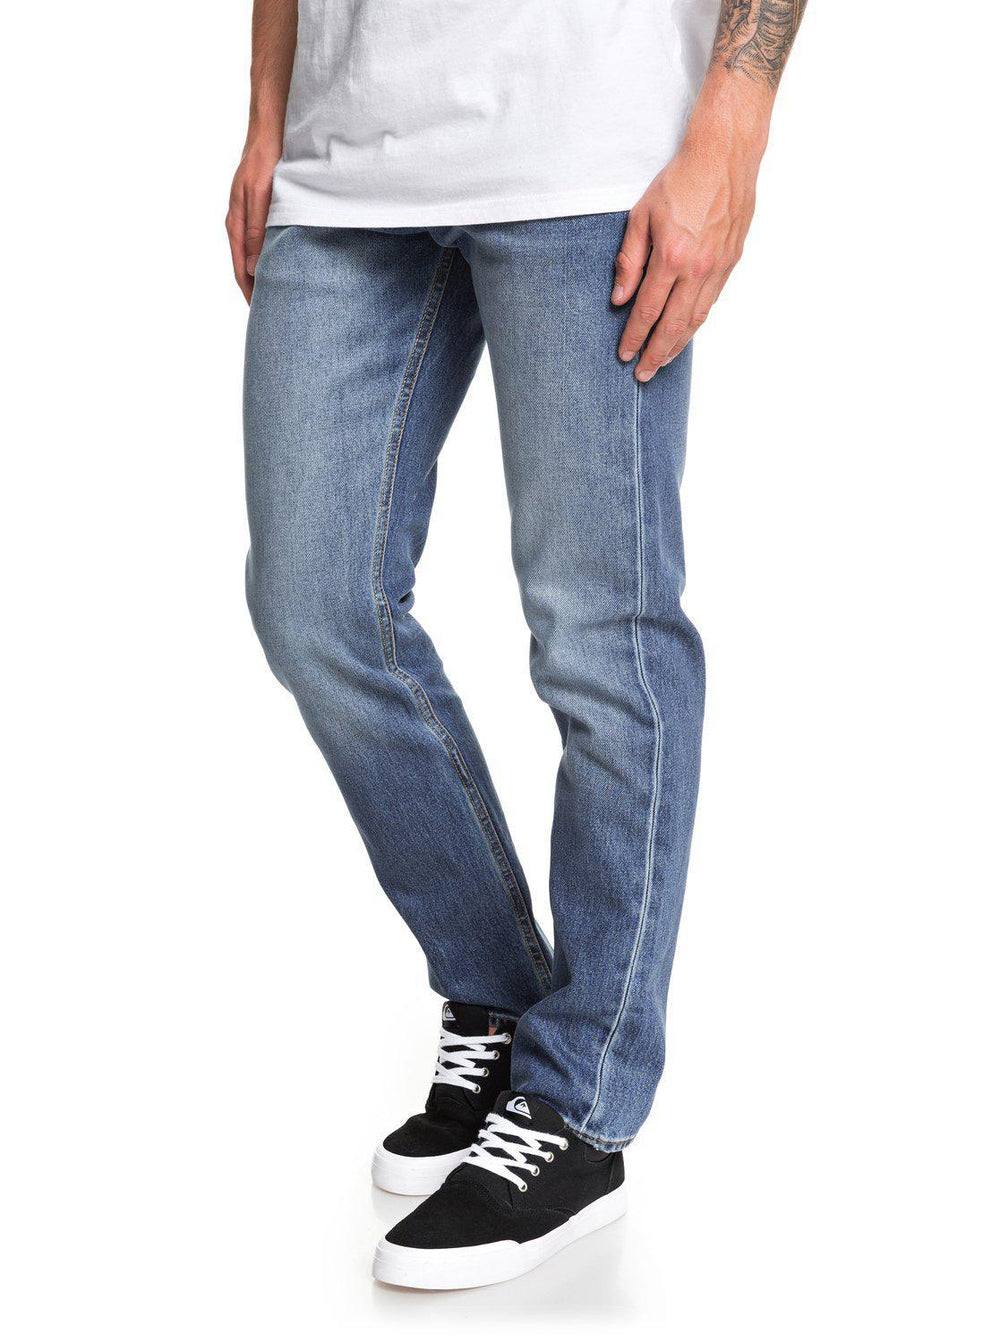 Revolver Medium Blue Straight Fit Jeans